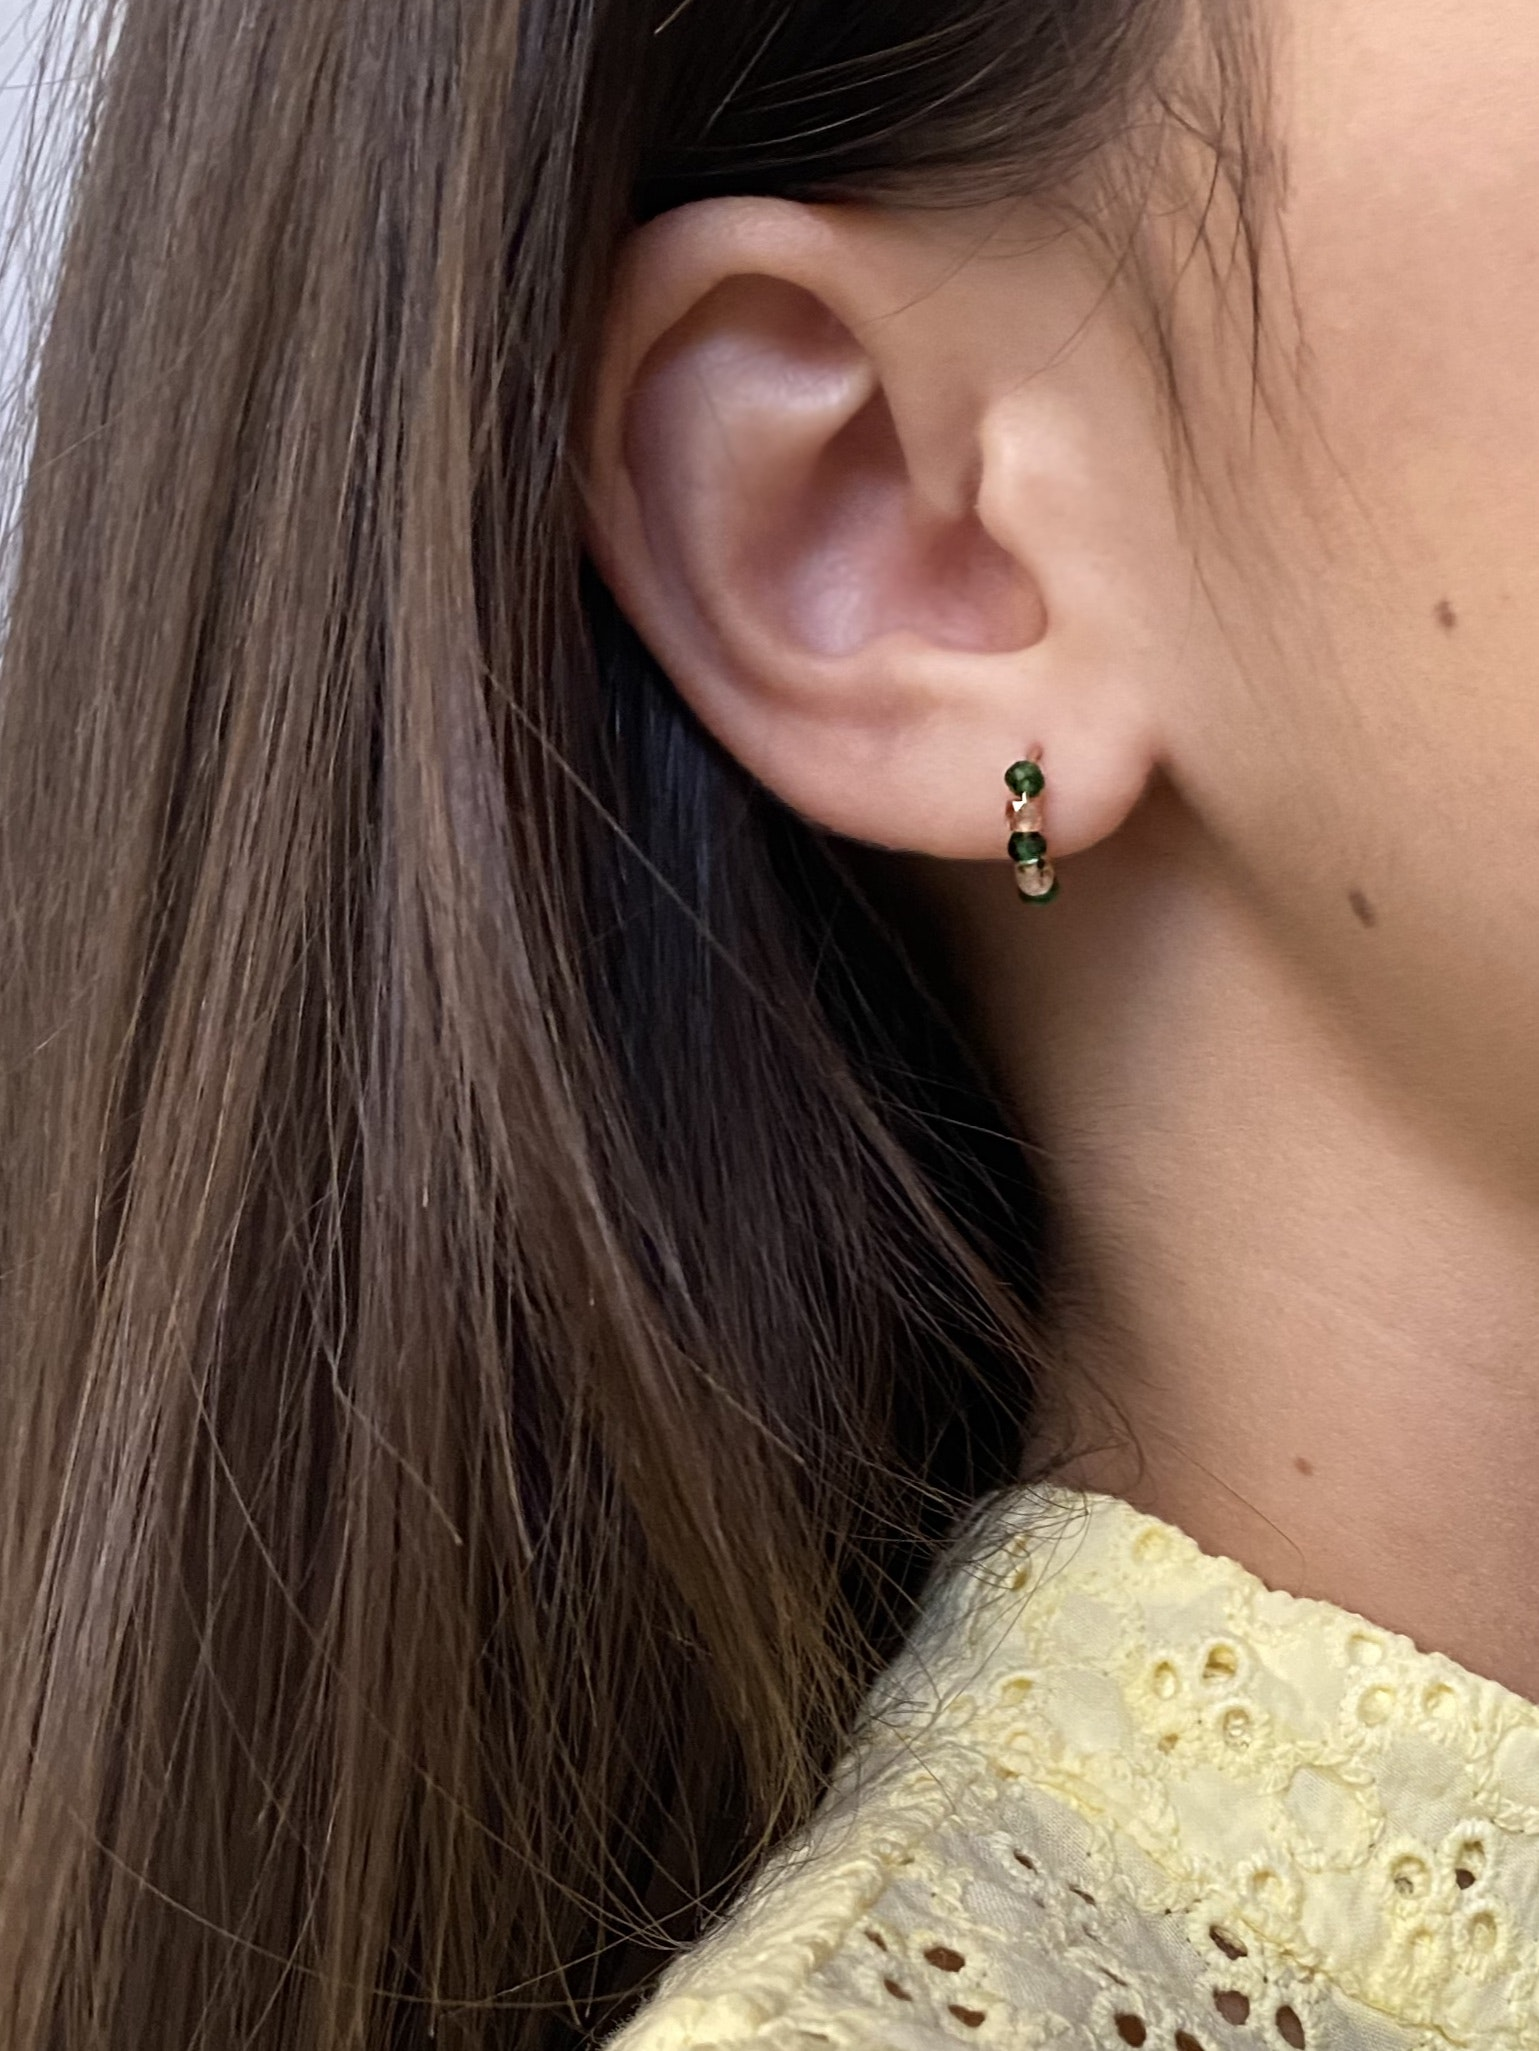 Margherita de Martino Norante - Tuttifrutti collection - 18kt gold and semi precious stones earrings - green and pink -portrait